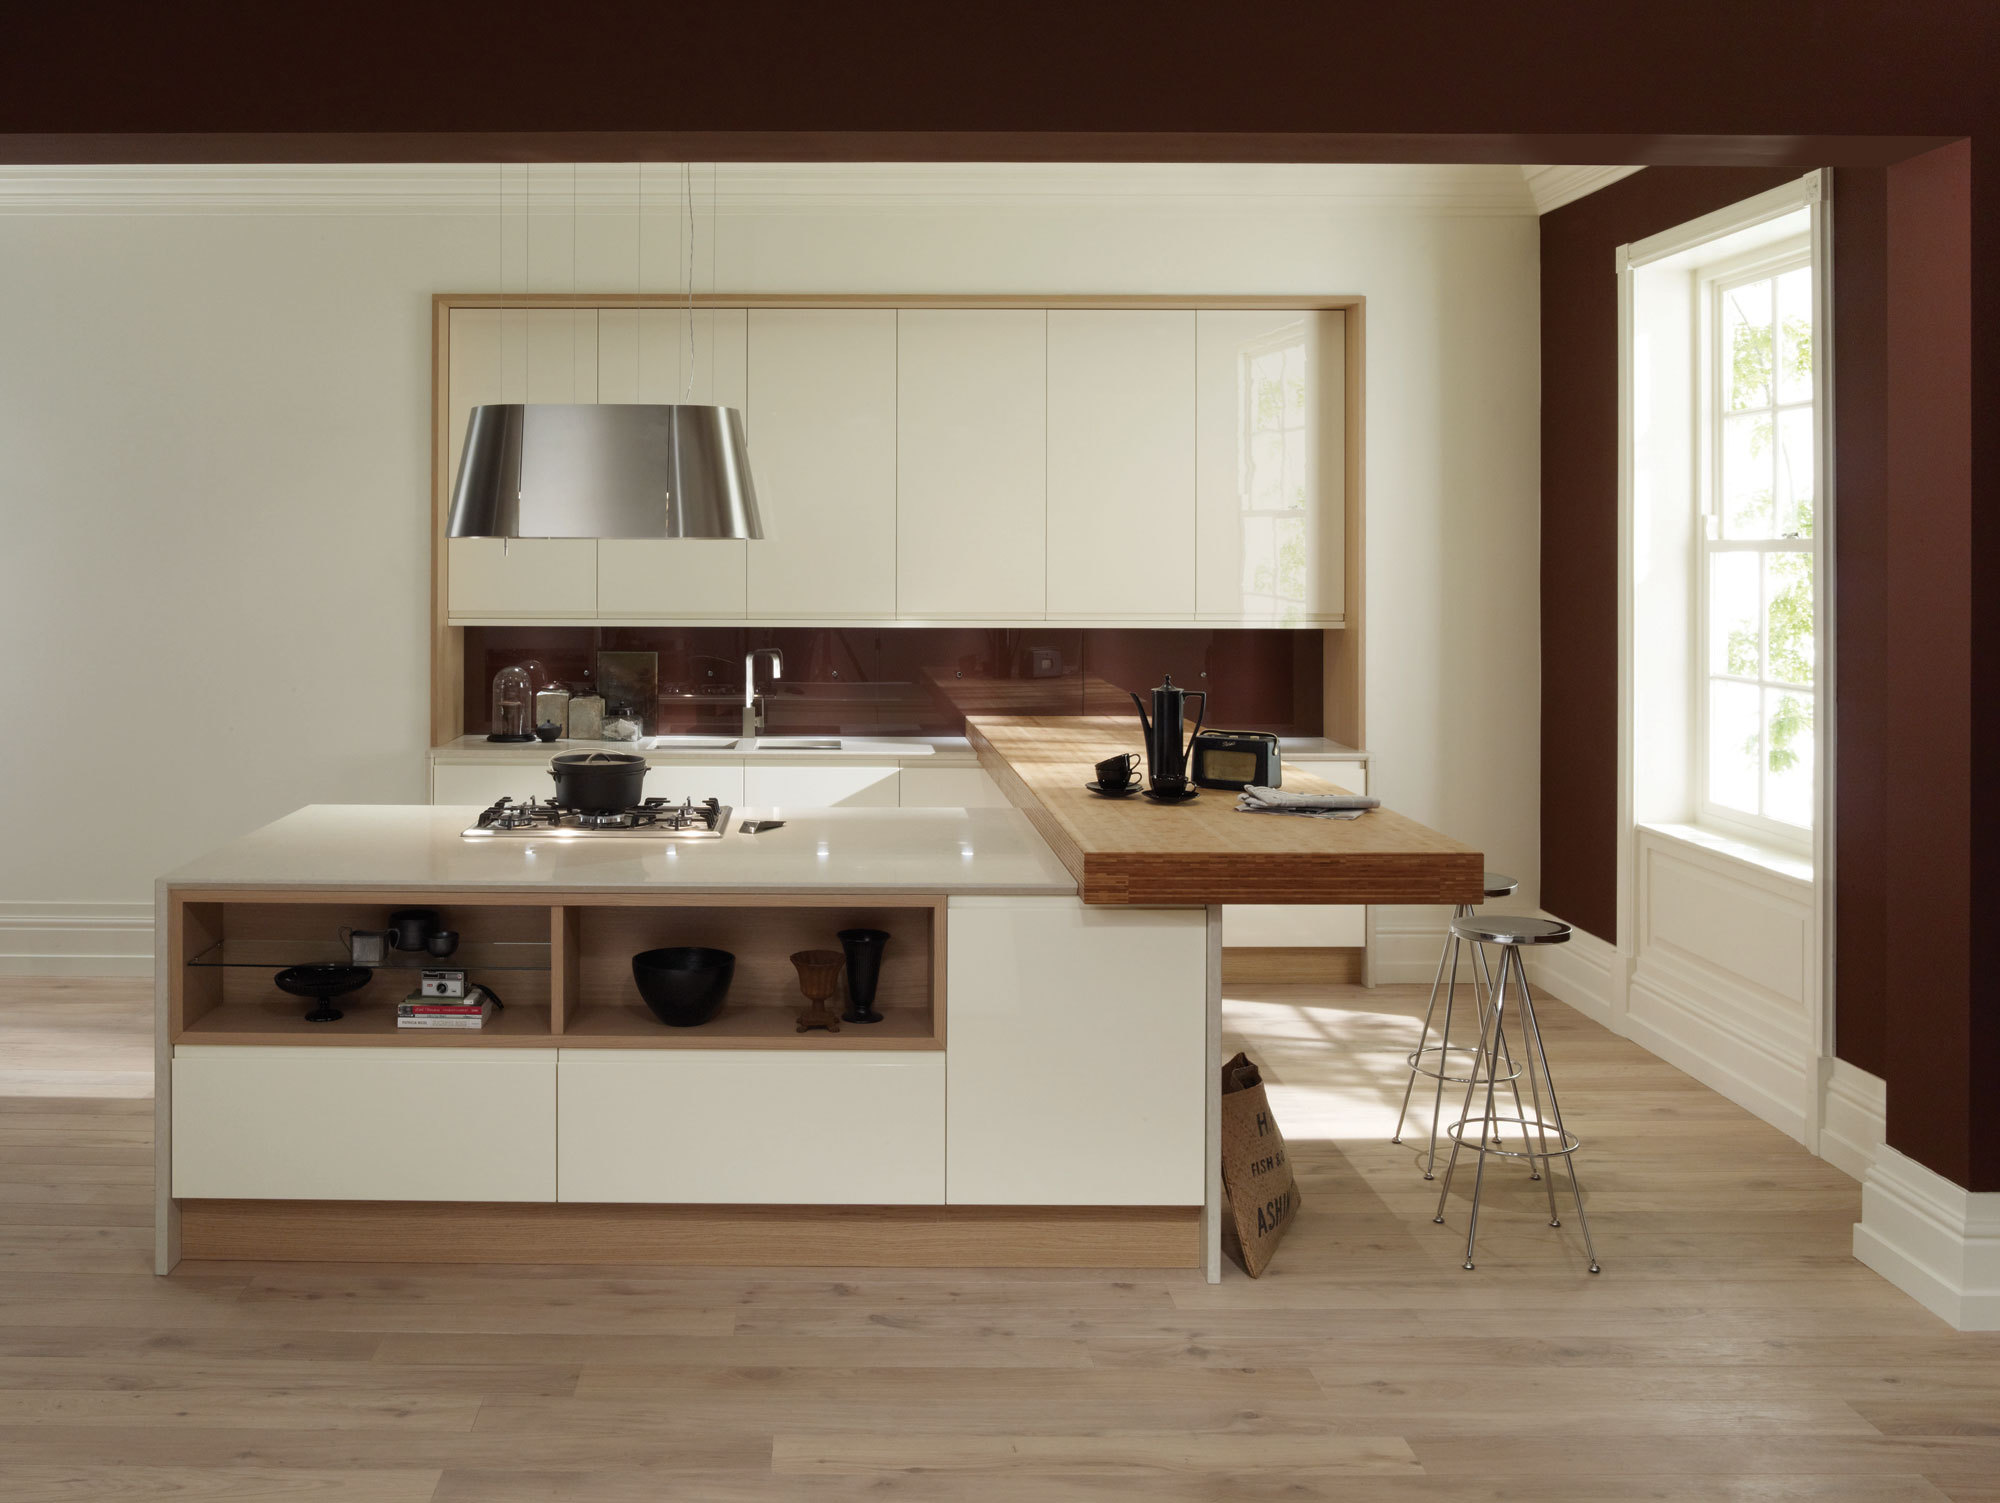 A beautiful designer kitchen by Installers of quality fitted furniture. The Kitchen and Bedroom Studio   Installers of quality fitted